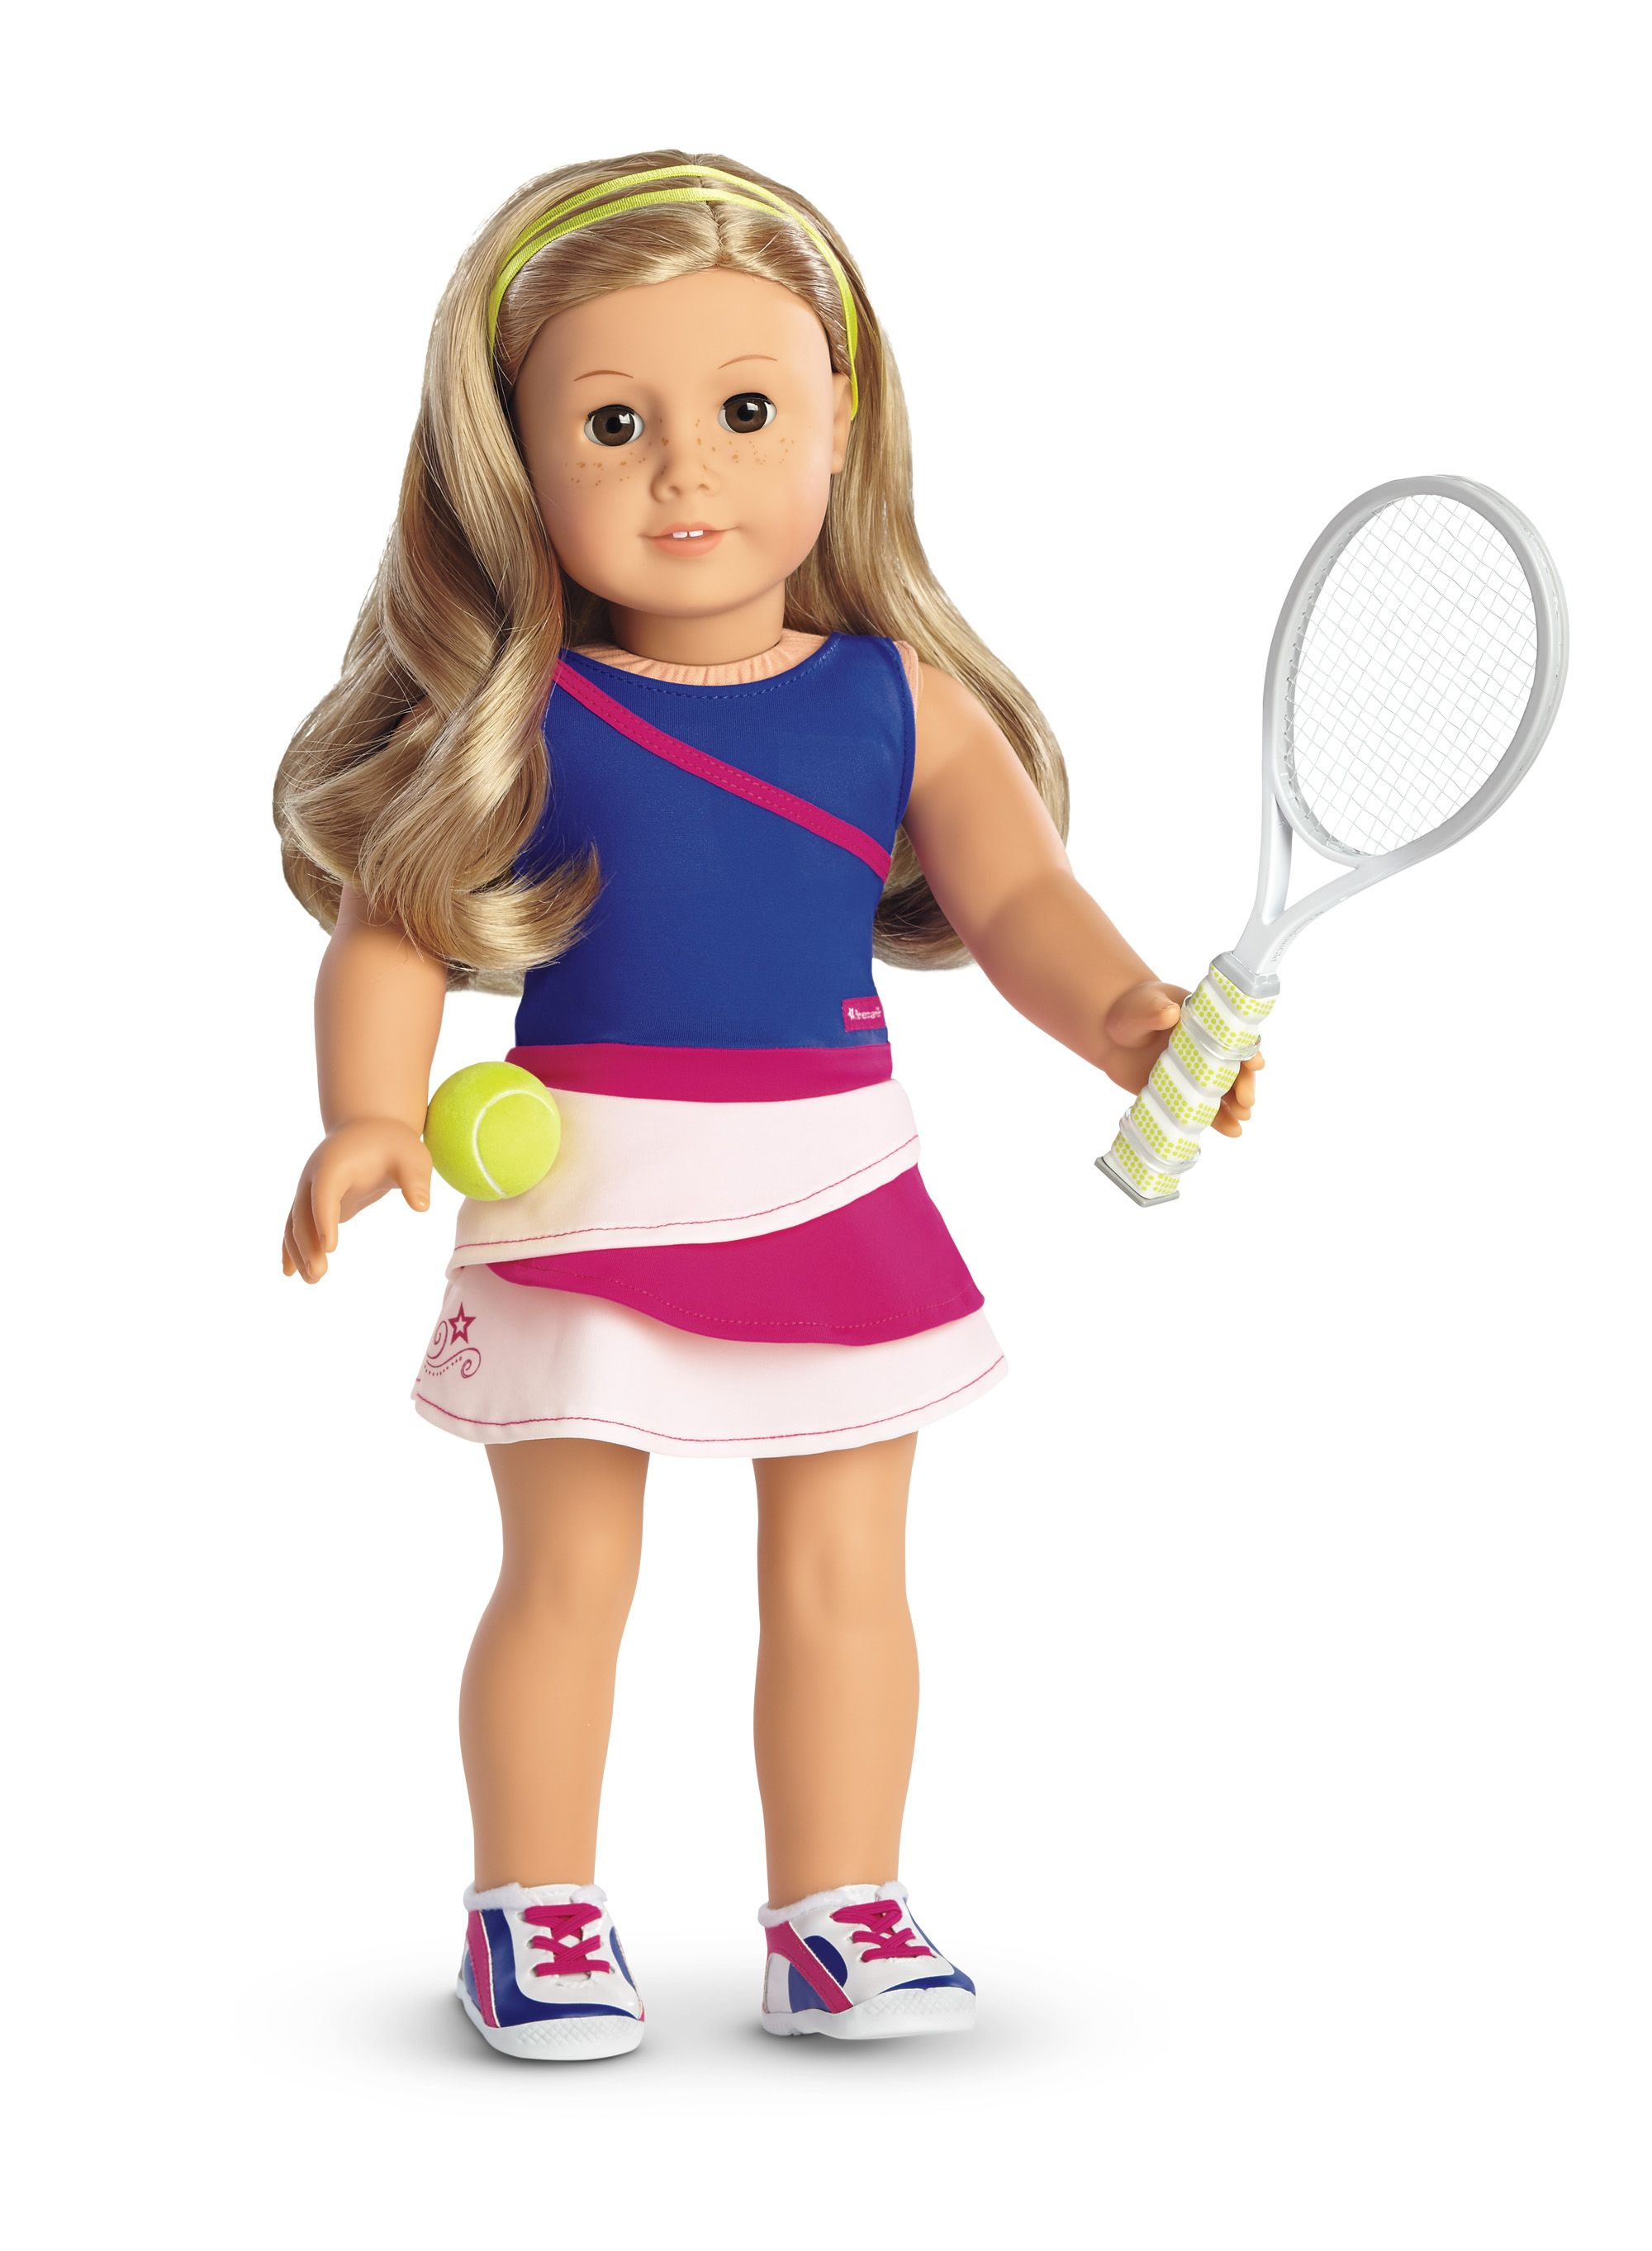 f2dd86a068b01 Tennis Ace Outfit for 18-inch Dolls | ARCHIVE: Truly Me | American ...